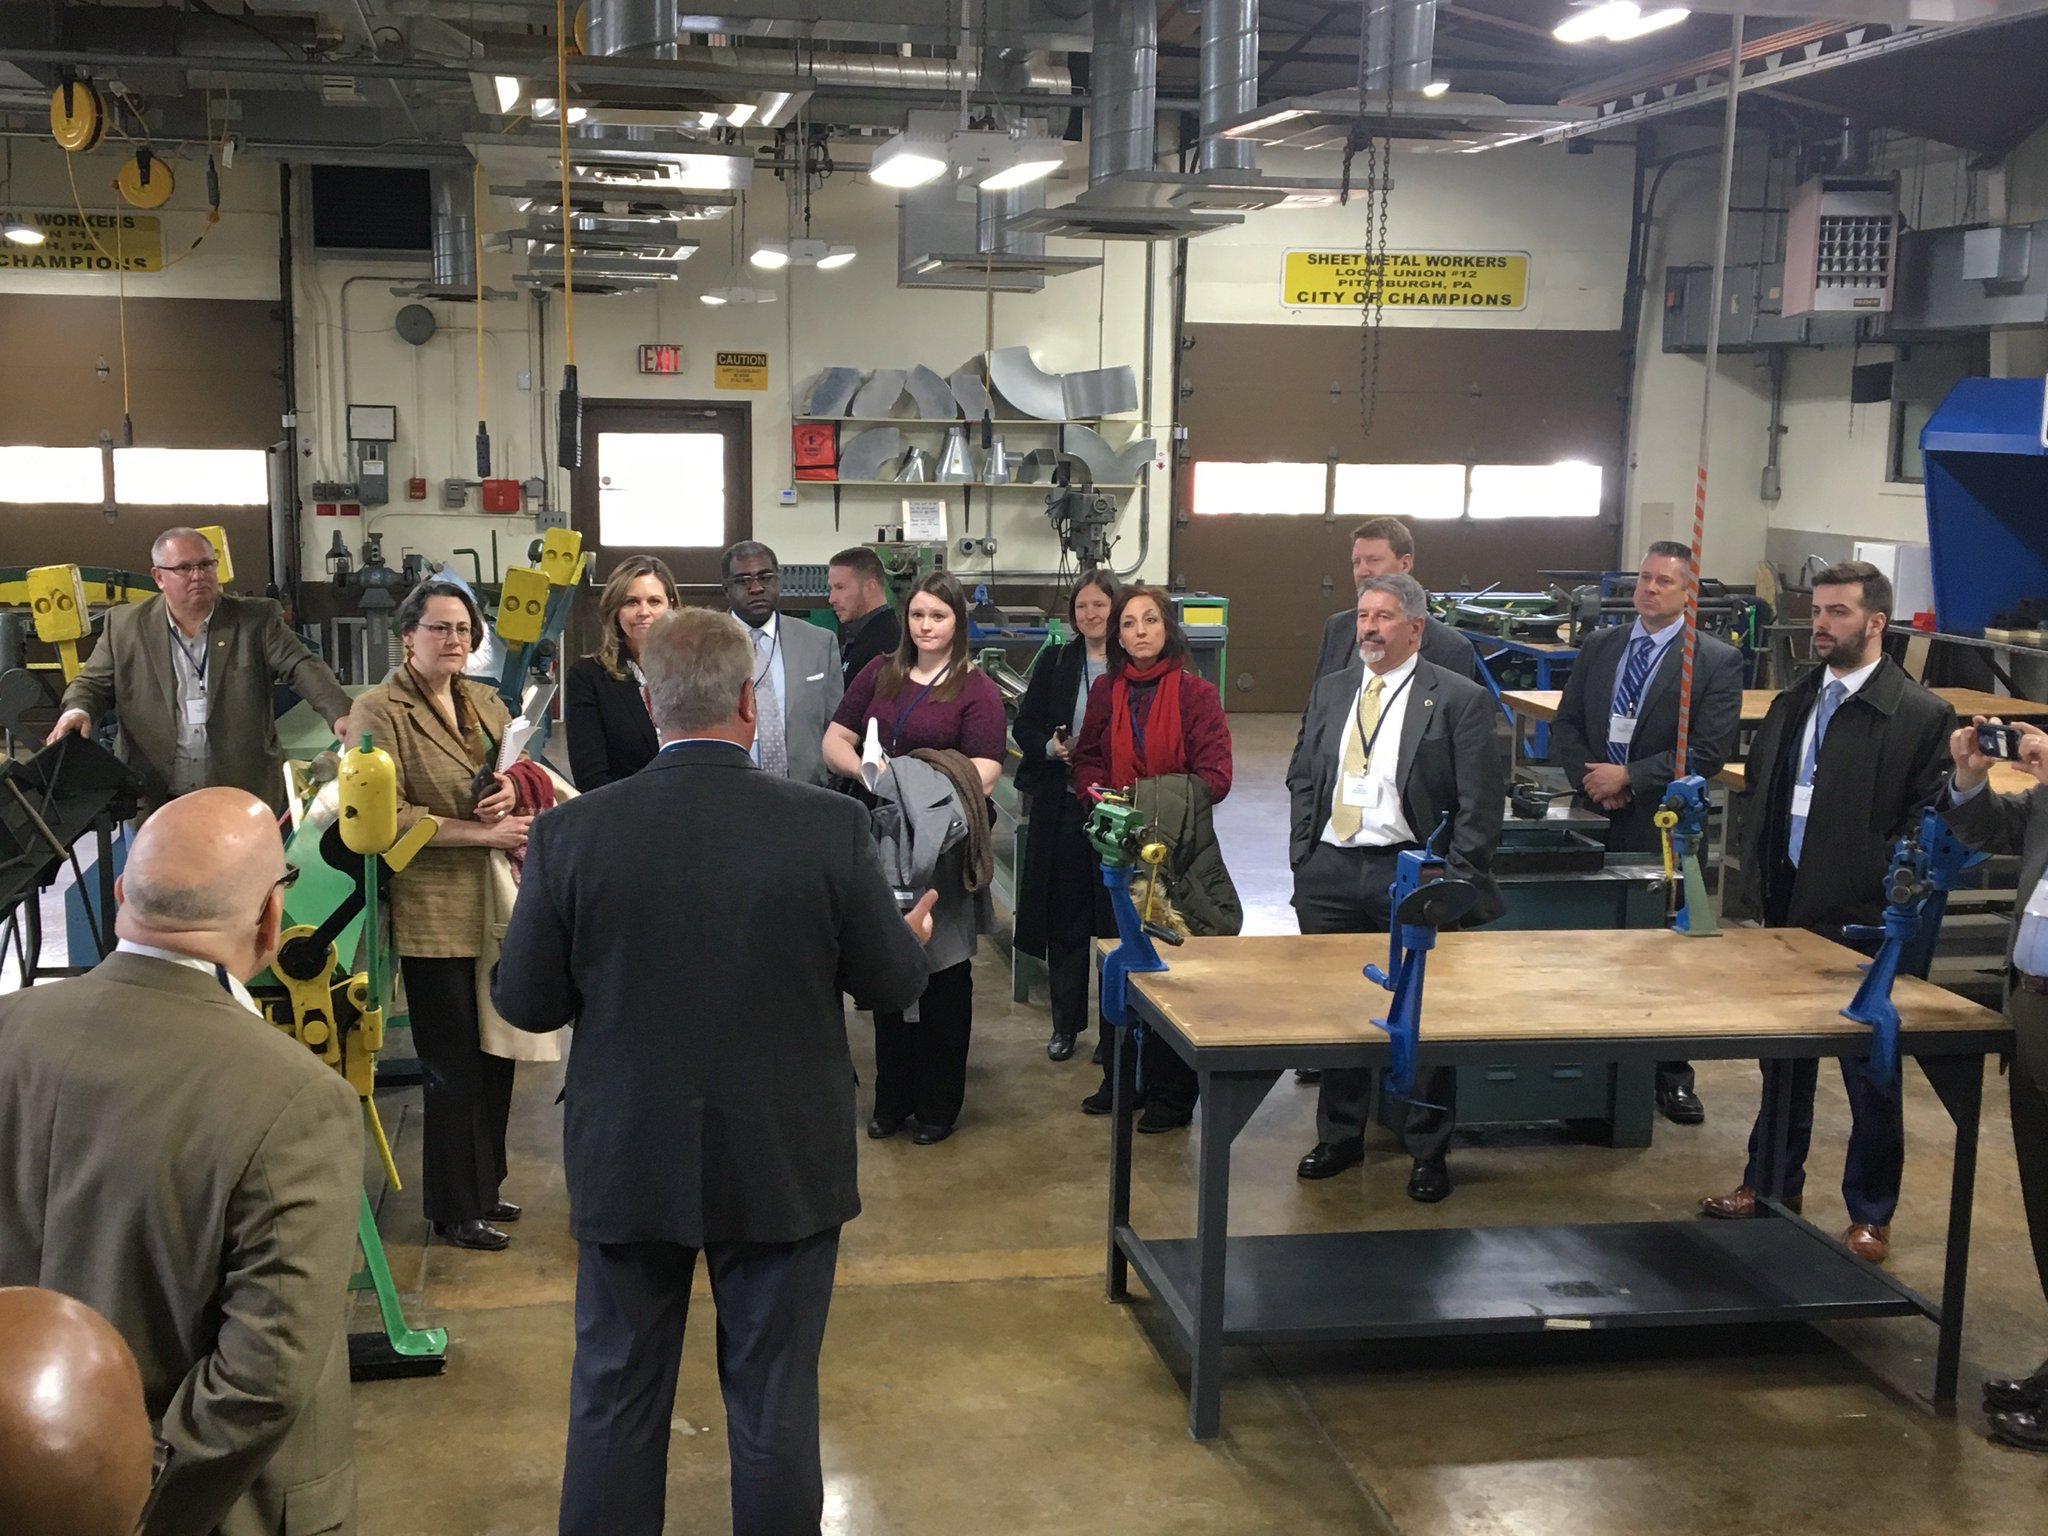 Thanks @L12TC & @smacnawpa for a great tour of #EnergyEfficiency job training to help meet the 7.5% annual job growth of our industry! https://t.co/j3yFjtmrYU